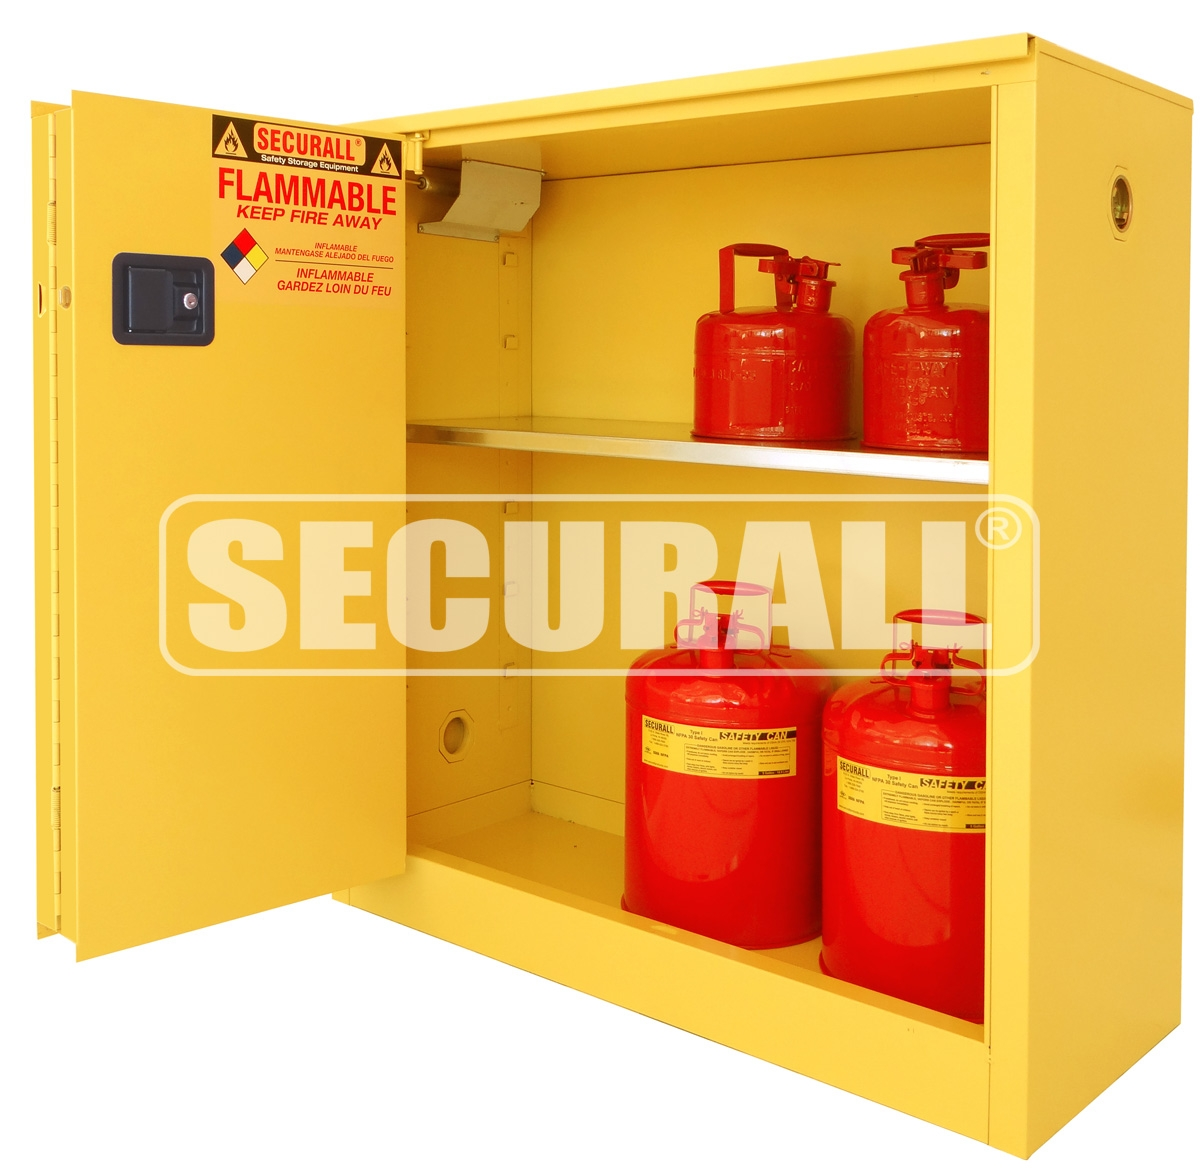 Temperature Controlled Flammable Storage Cabinetsecurall flammable storage flammable cabinet flammable storage